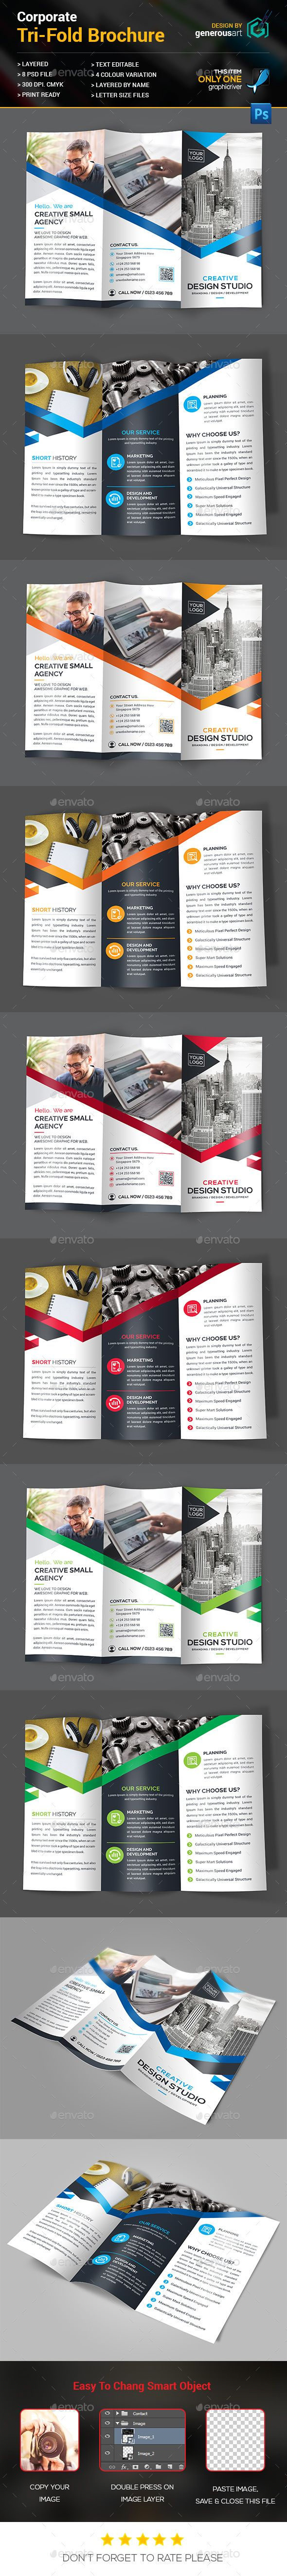 Tri-Fold Brochure Template PSD. Download here: http://graphicriver.net/item/trifold-brochure/14836566?ref=ksioks